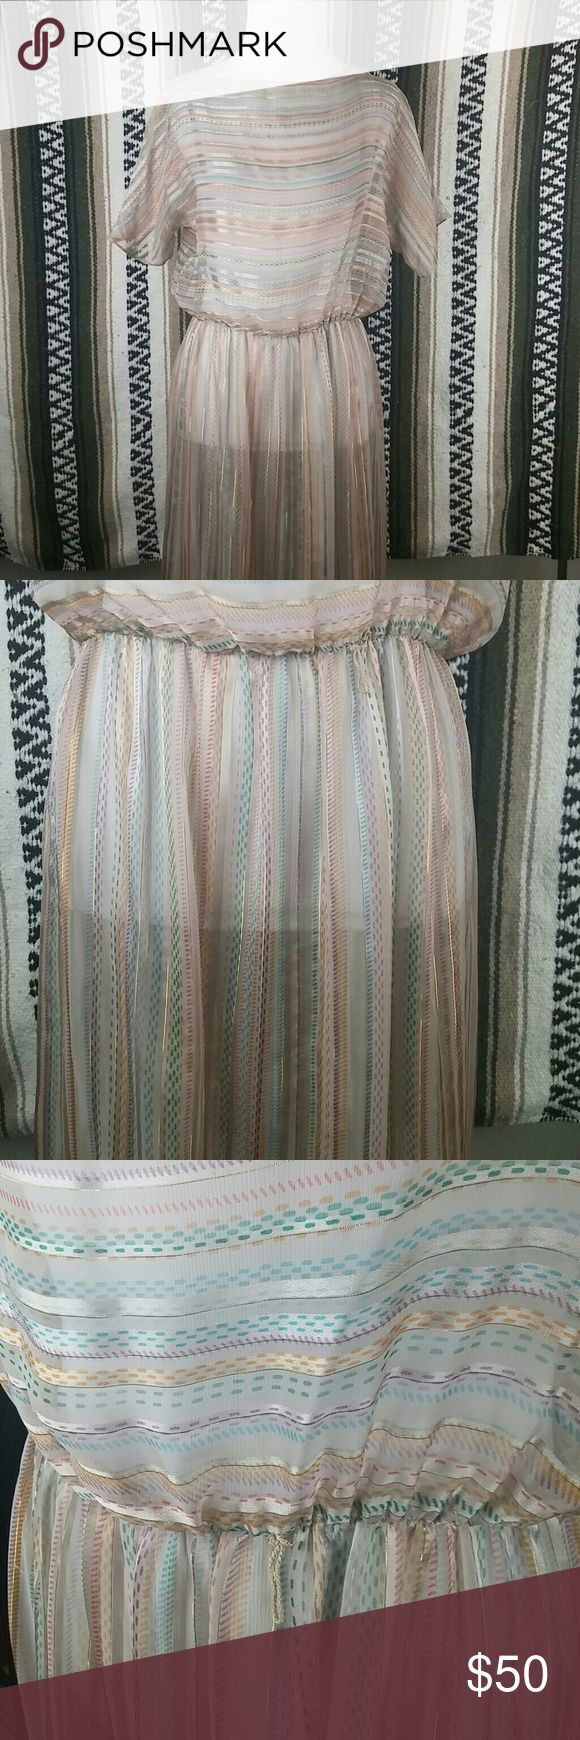 Sheer nude mod vintage stripped flowy dress Gorgeous vintage dress.  Sheer ( see through ) nude with metallic gold stripes and light colored pattern stripes.  Has belt loops. Tag doesn't say size or any fabric info. In perfect condition. No stains or runs. Tag reads : Lizzy & Johnny  By Lucero vintage  Dresses Midi